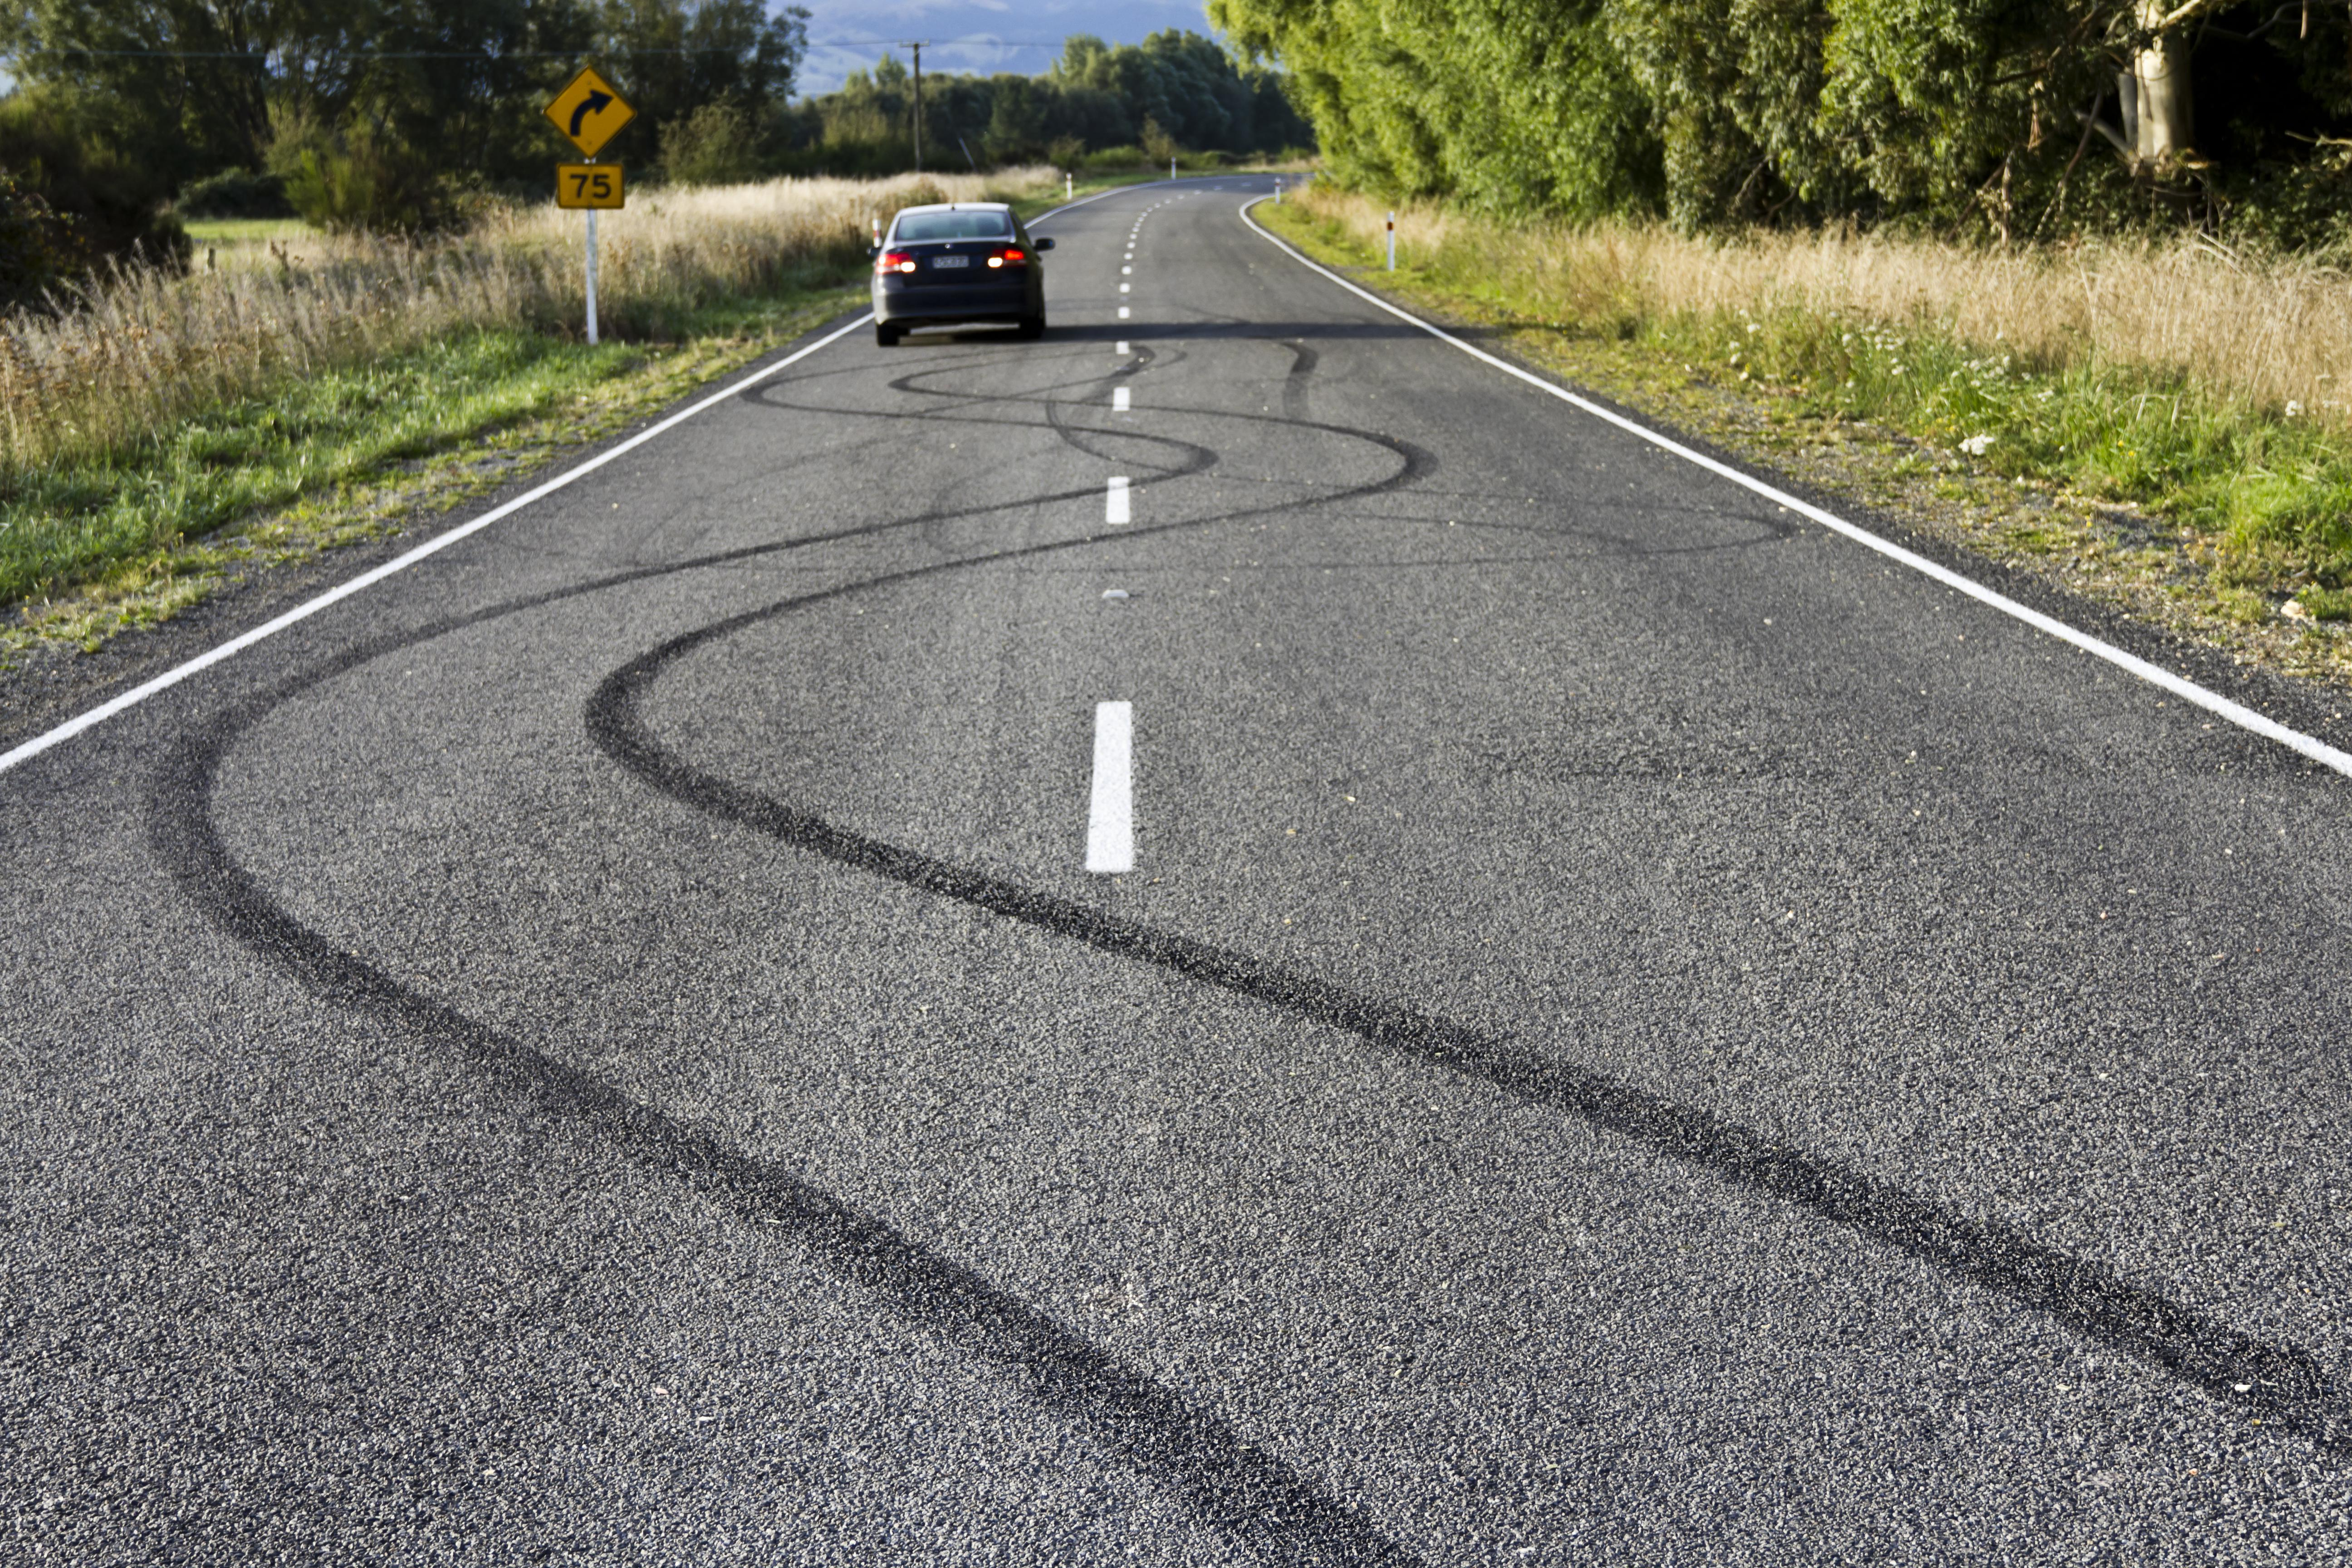 Skidmarks on country road